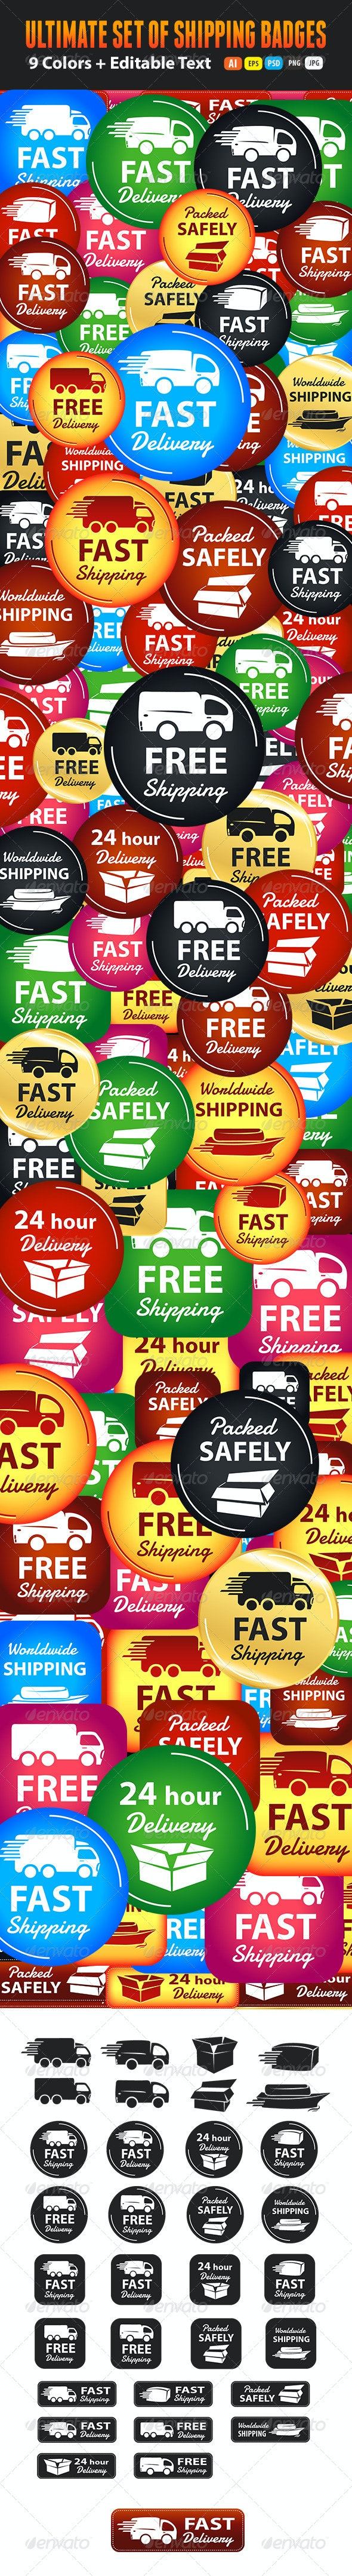 Large Set Of Shipping And Delivery Badges - Badges & Stickers Web Elements